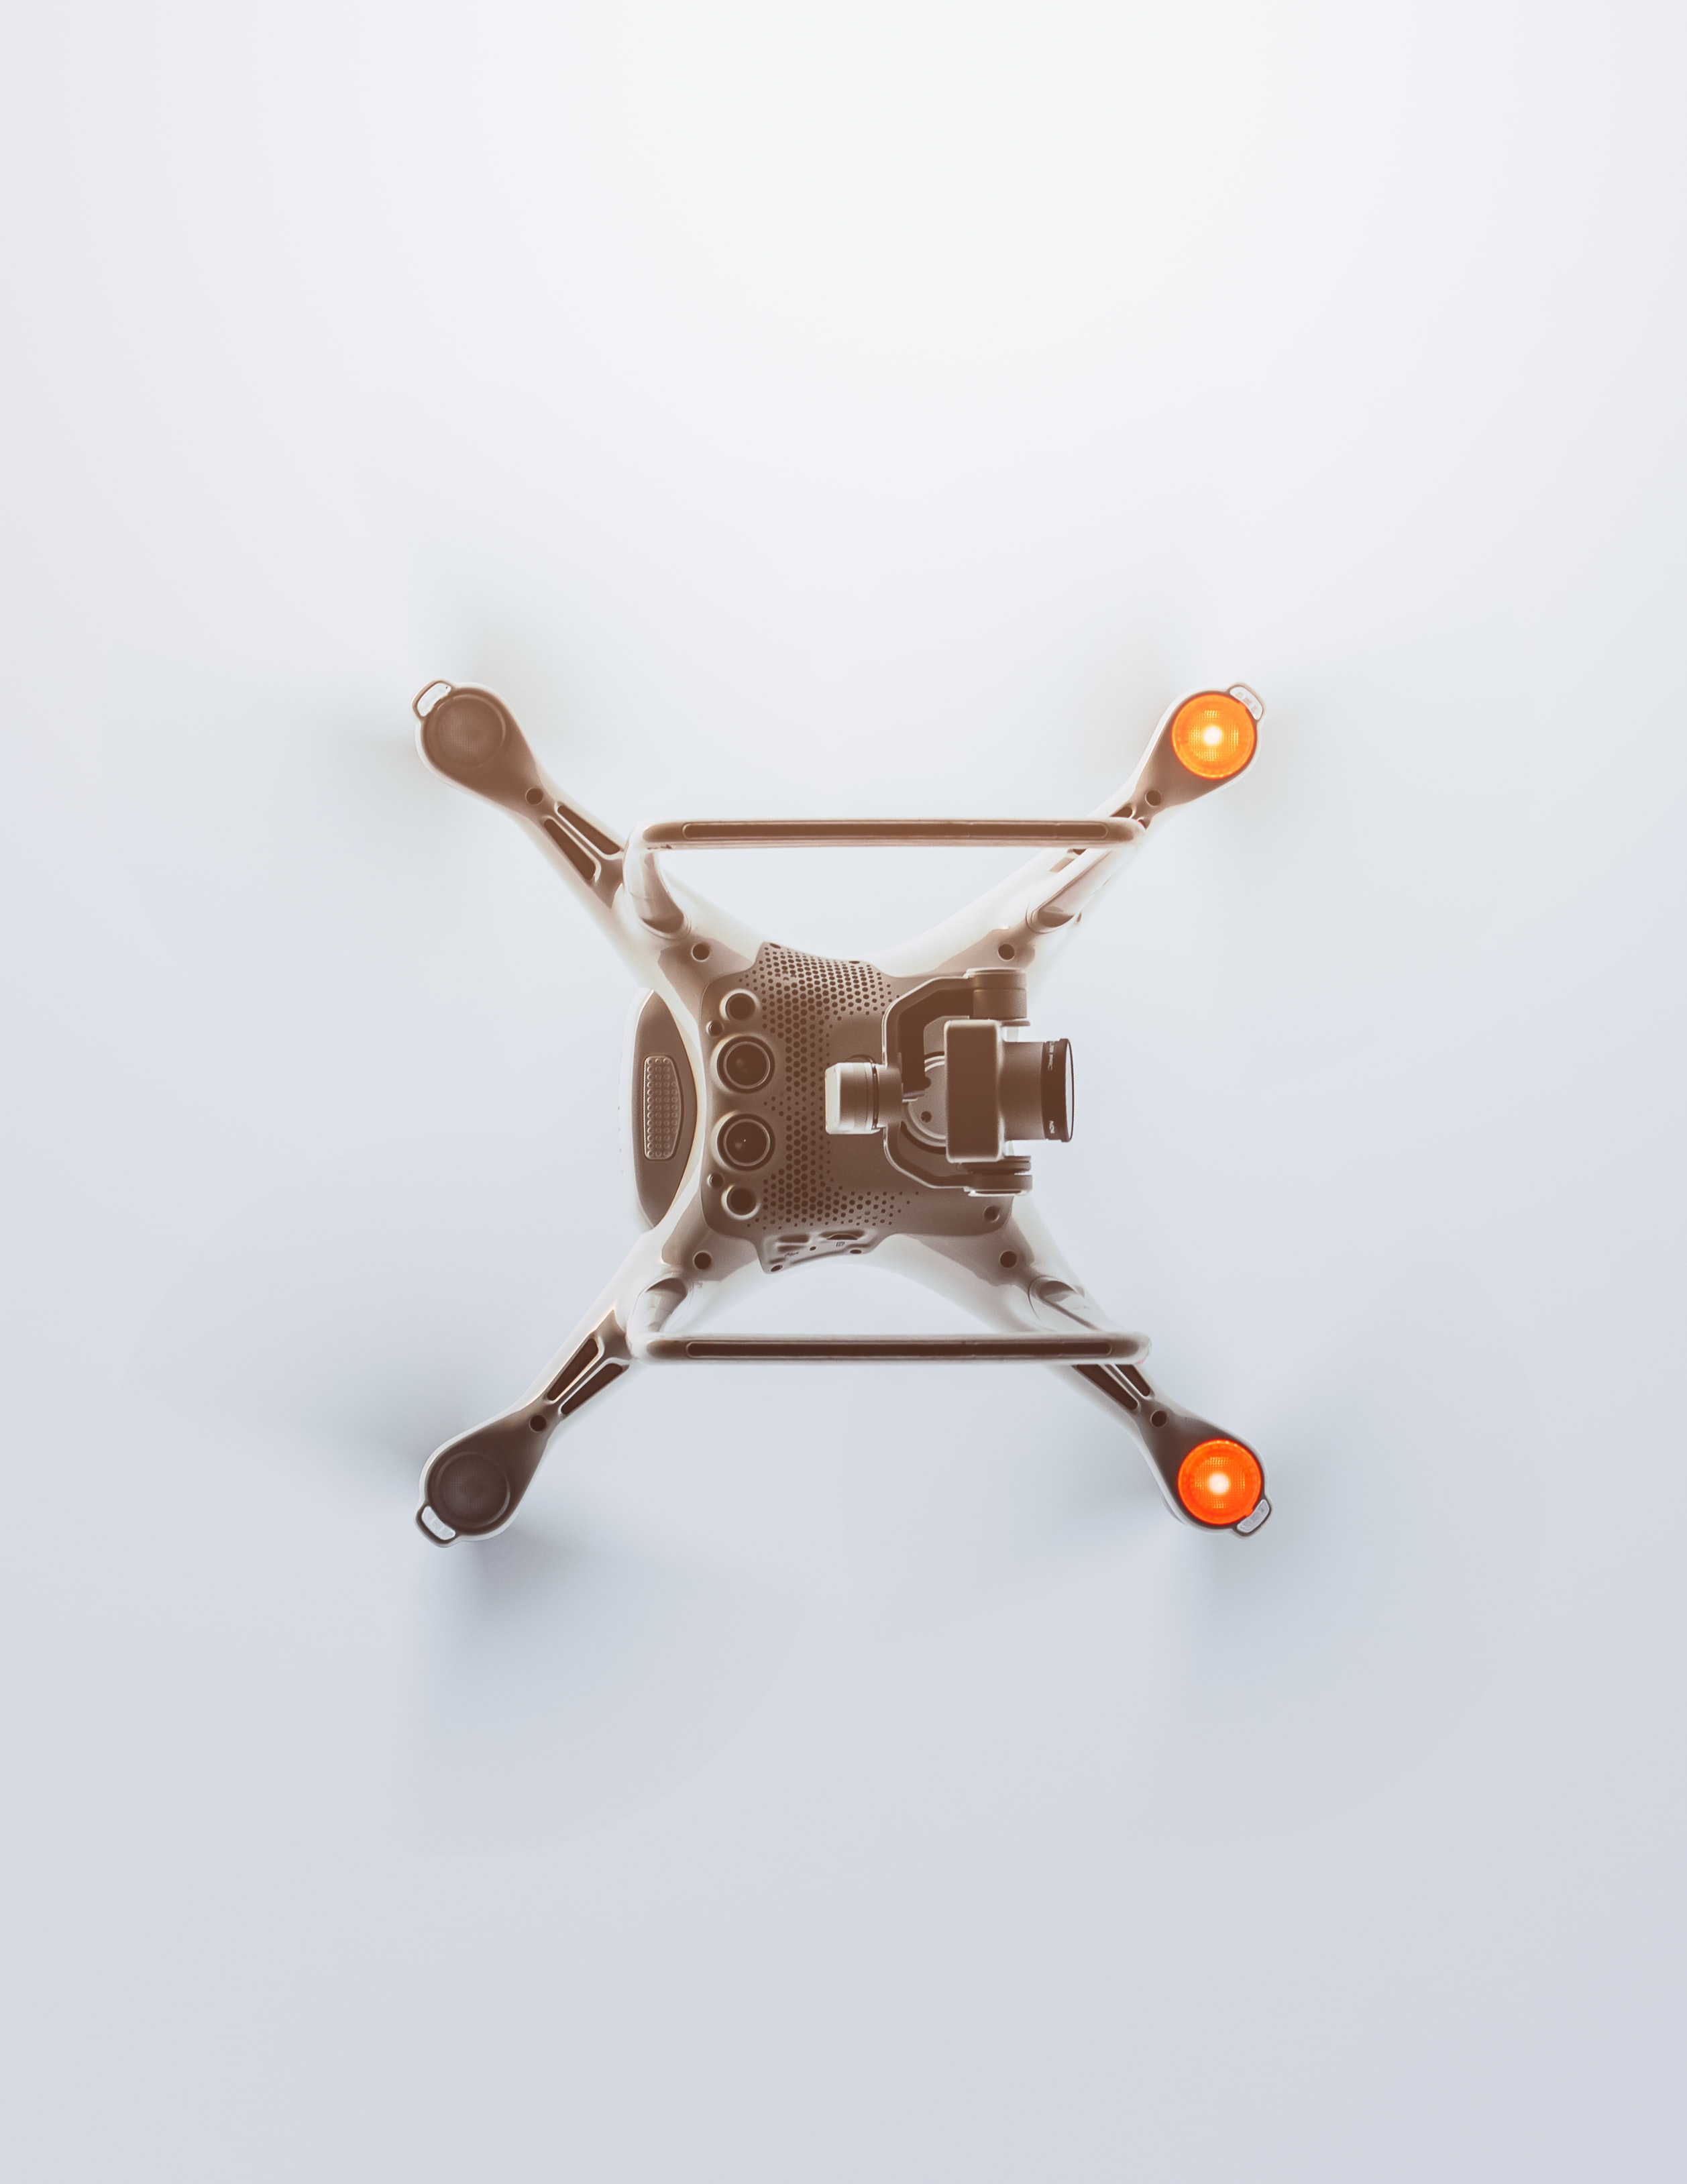 A DJI Phantom drone on a white surface